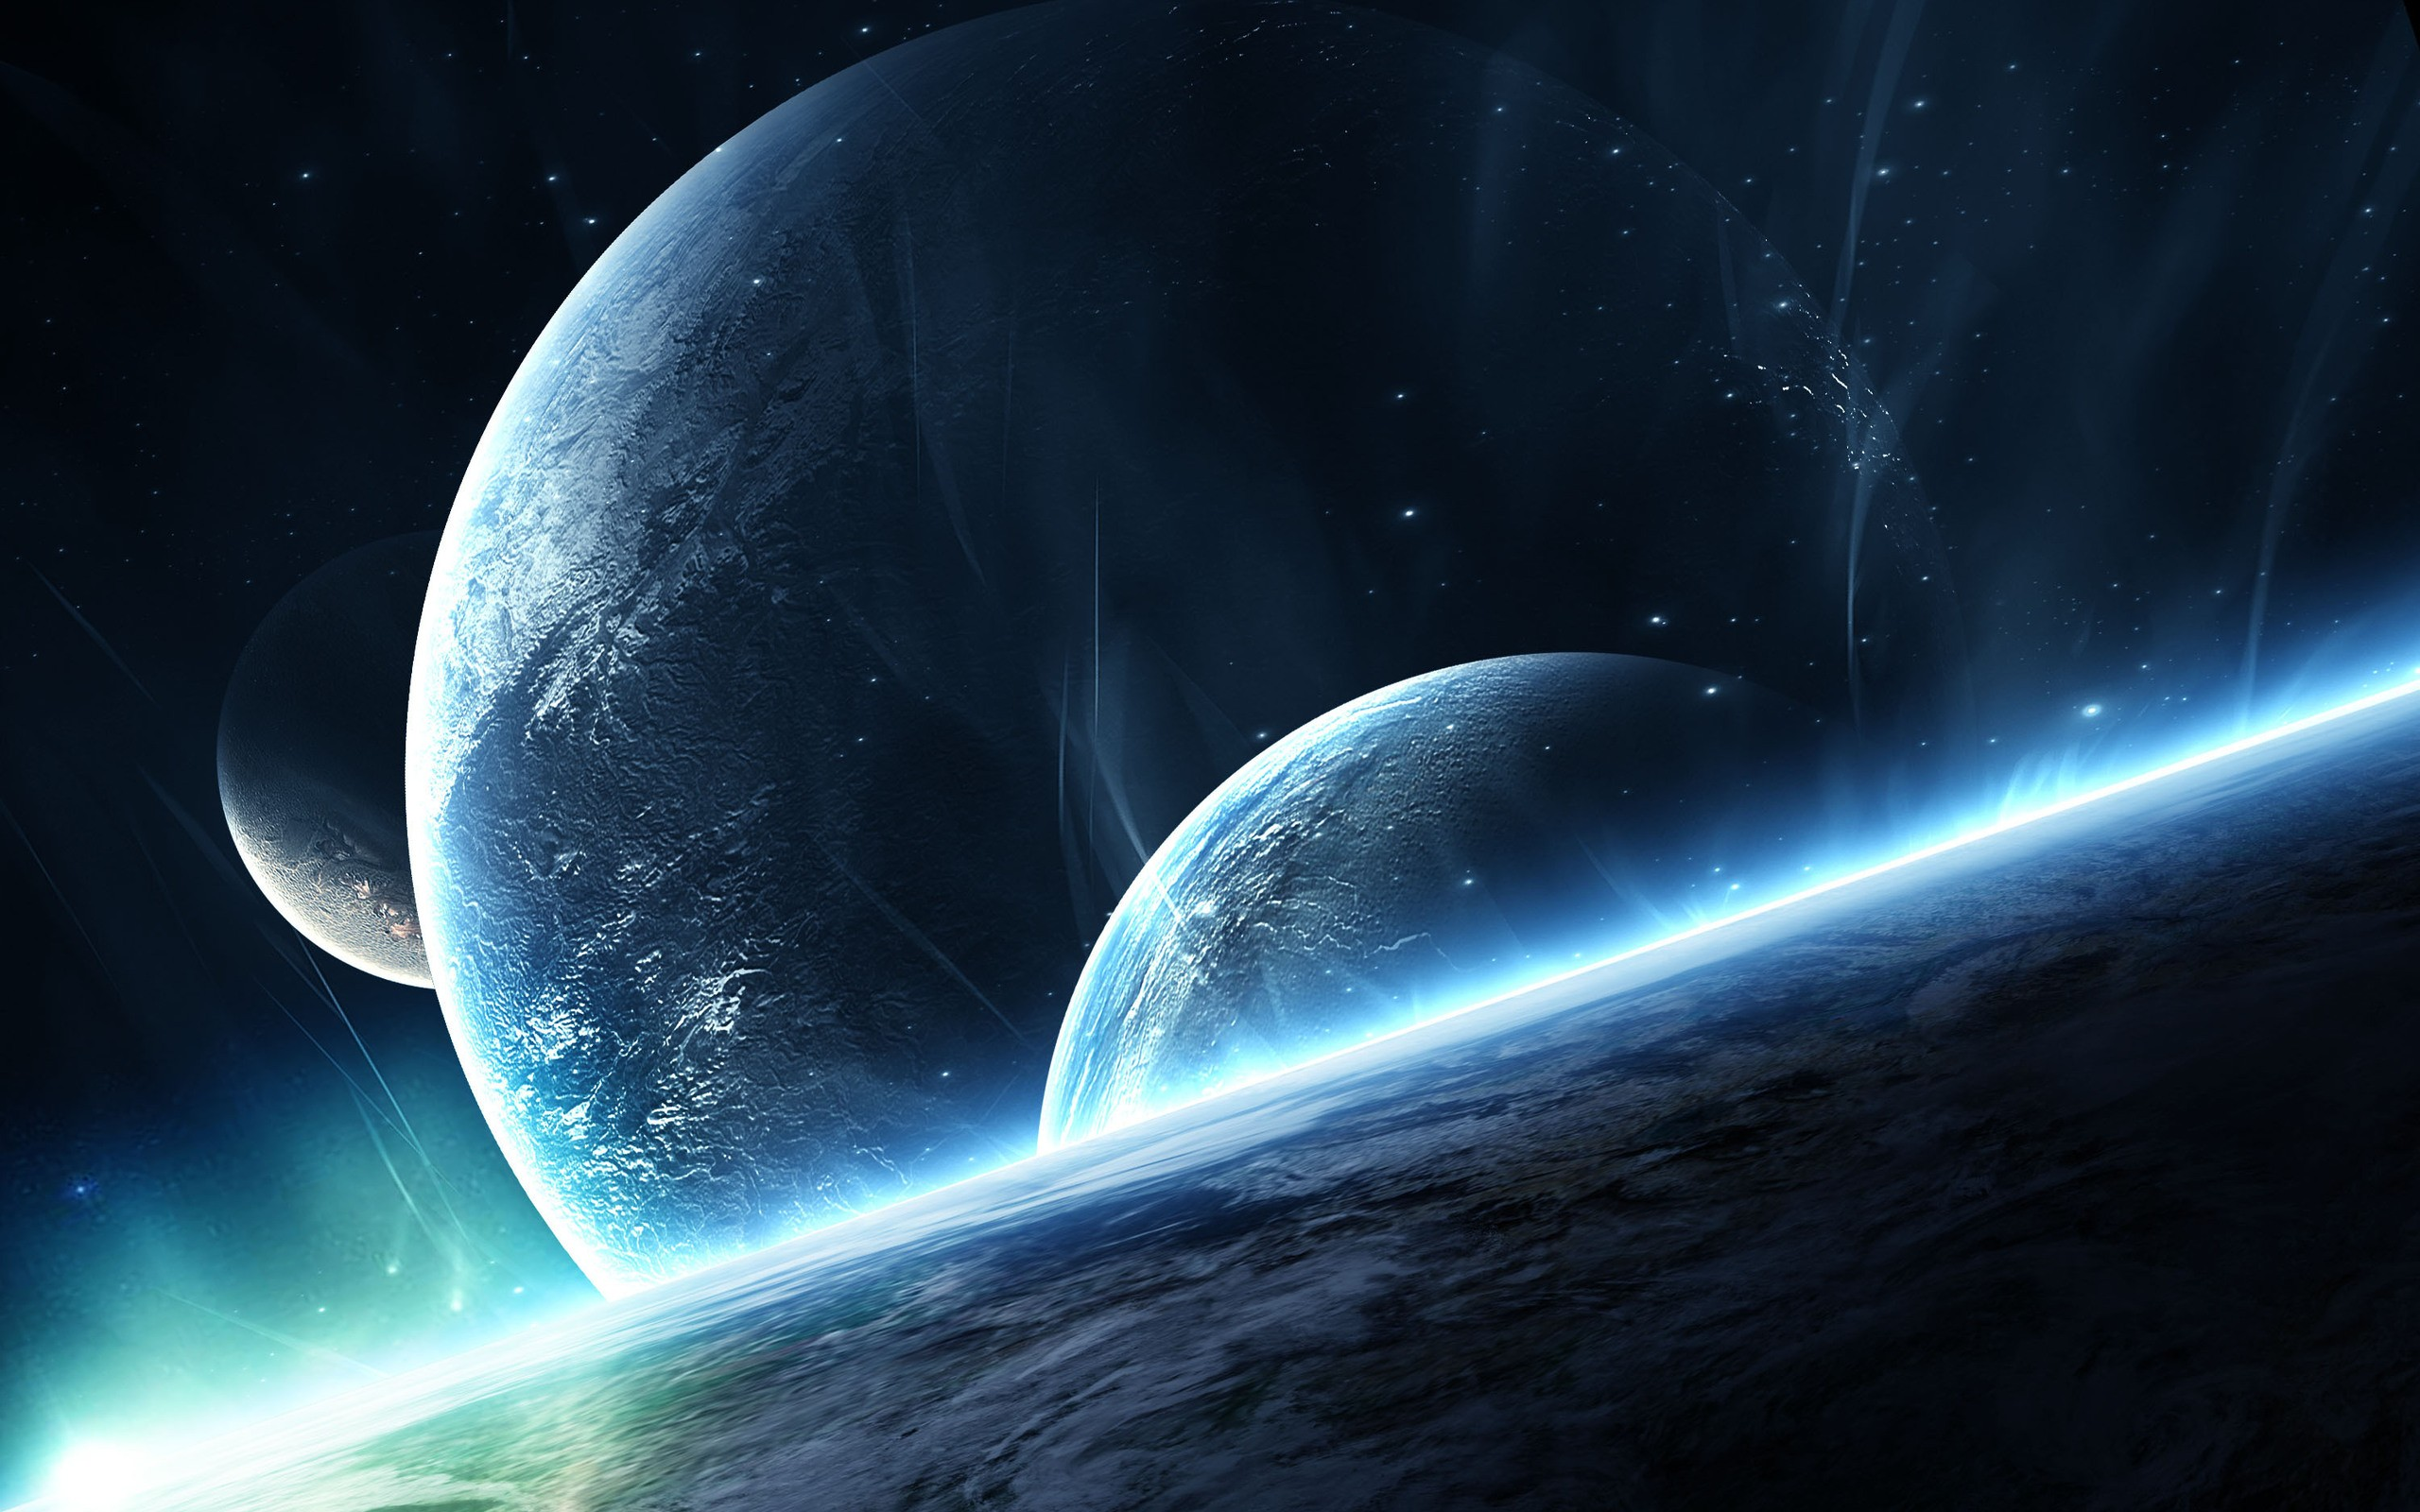 Outer Space Wallpapers   Full HD Desktop Backgrounds 2560x1600